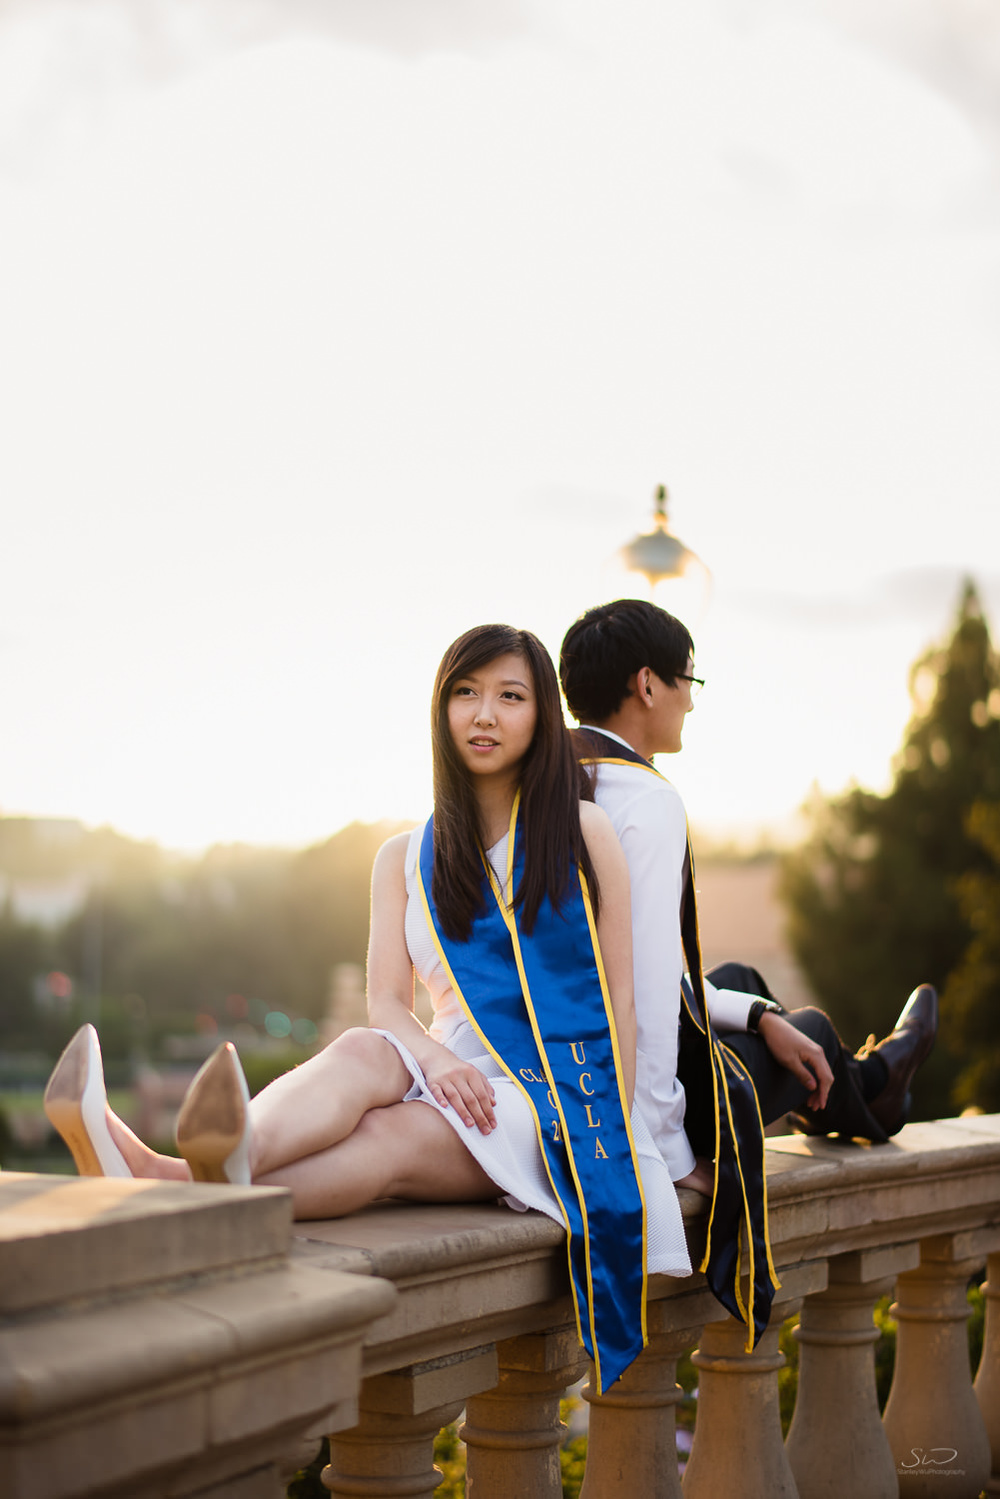 ucla-uc-berkeley-couple-grad-17.jpg